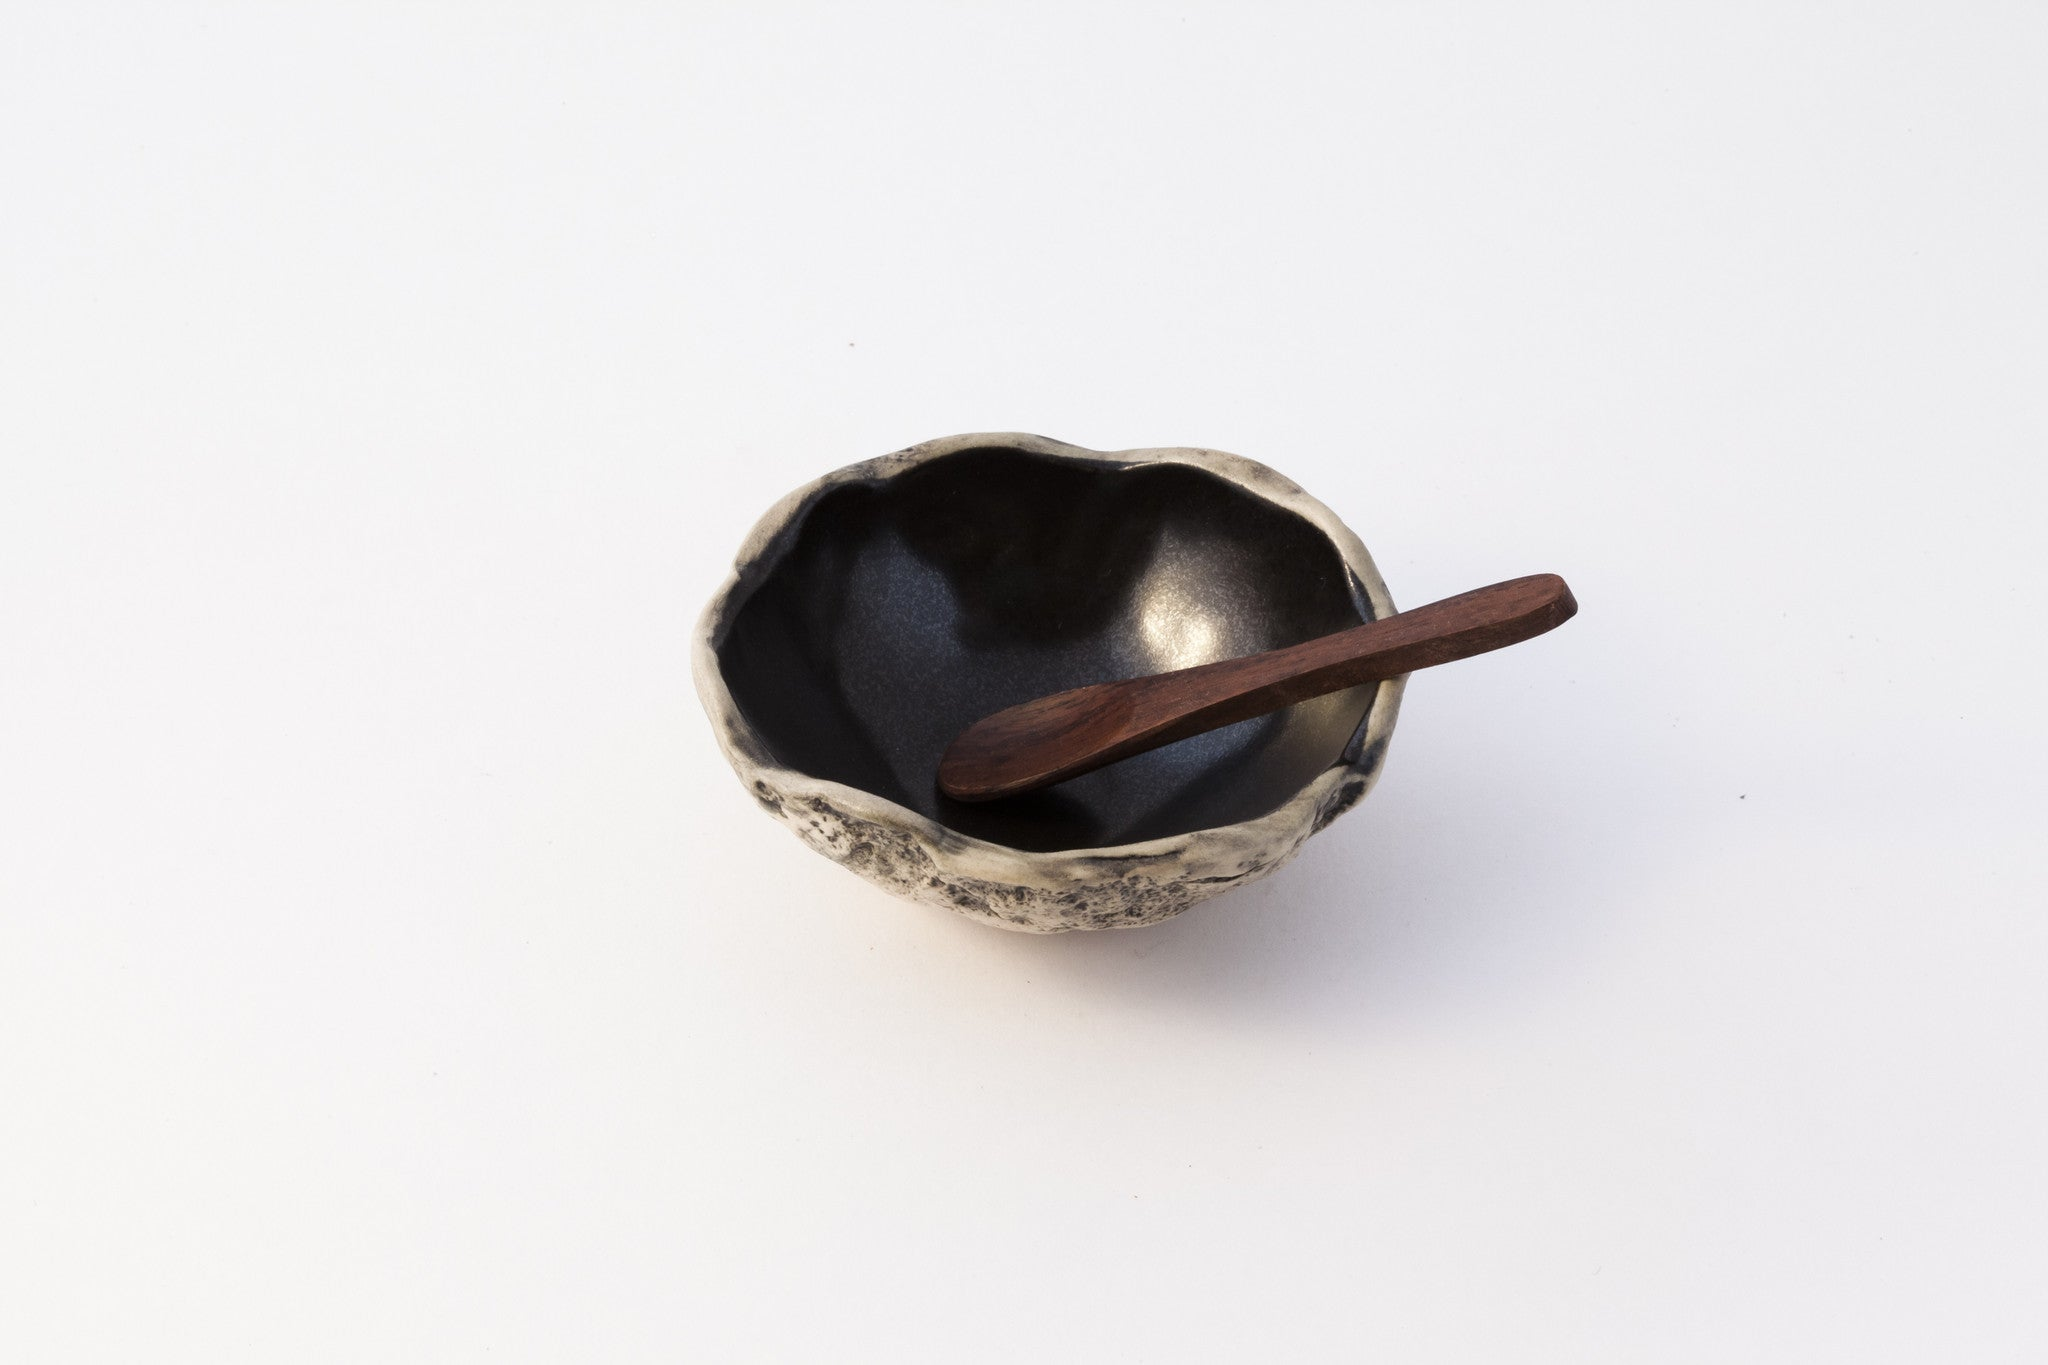 Spice bowl with spoon